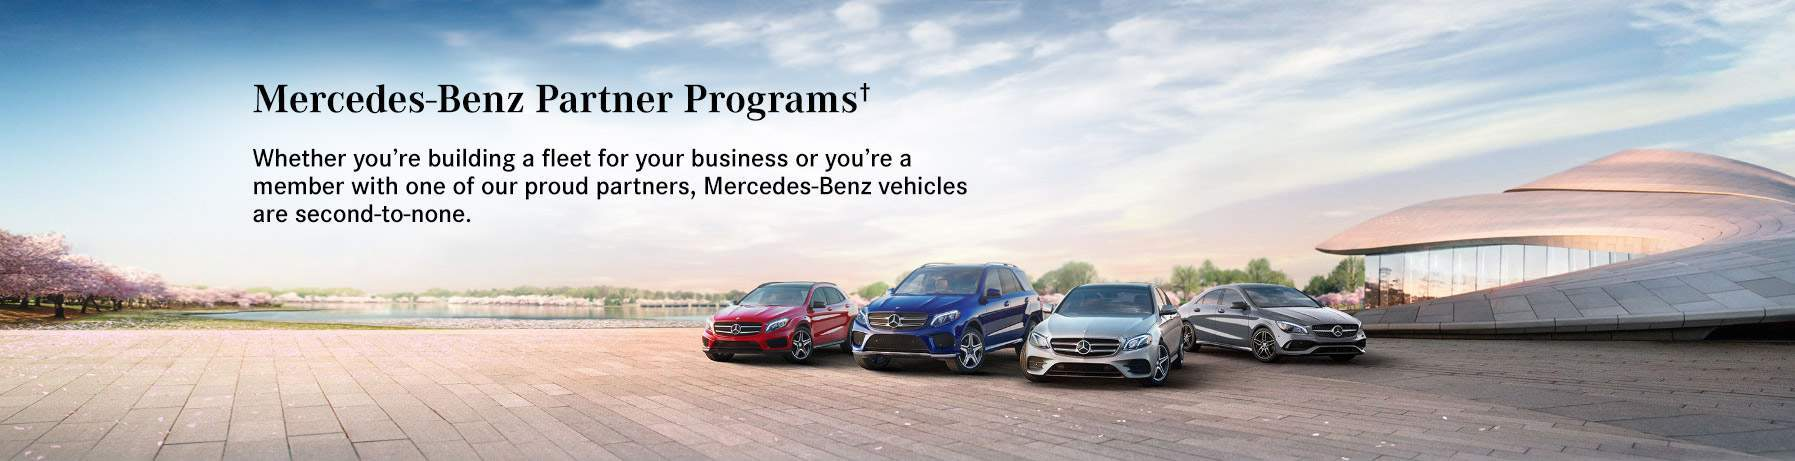 Cutler bay florida mercedes benz smart dealership for Mercedes benz of cutler bay